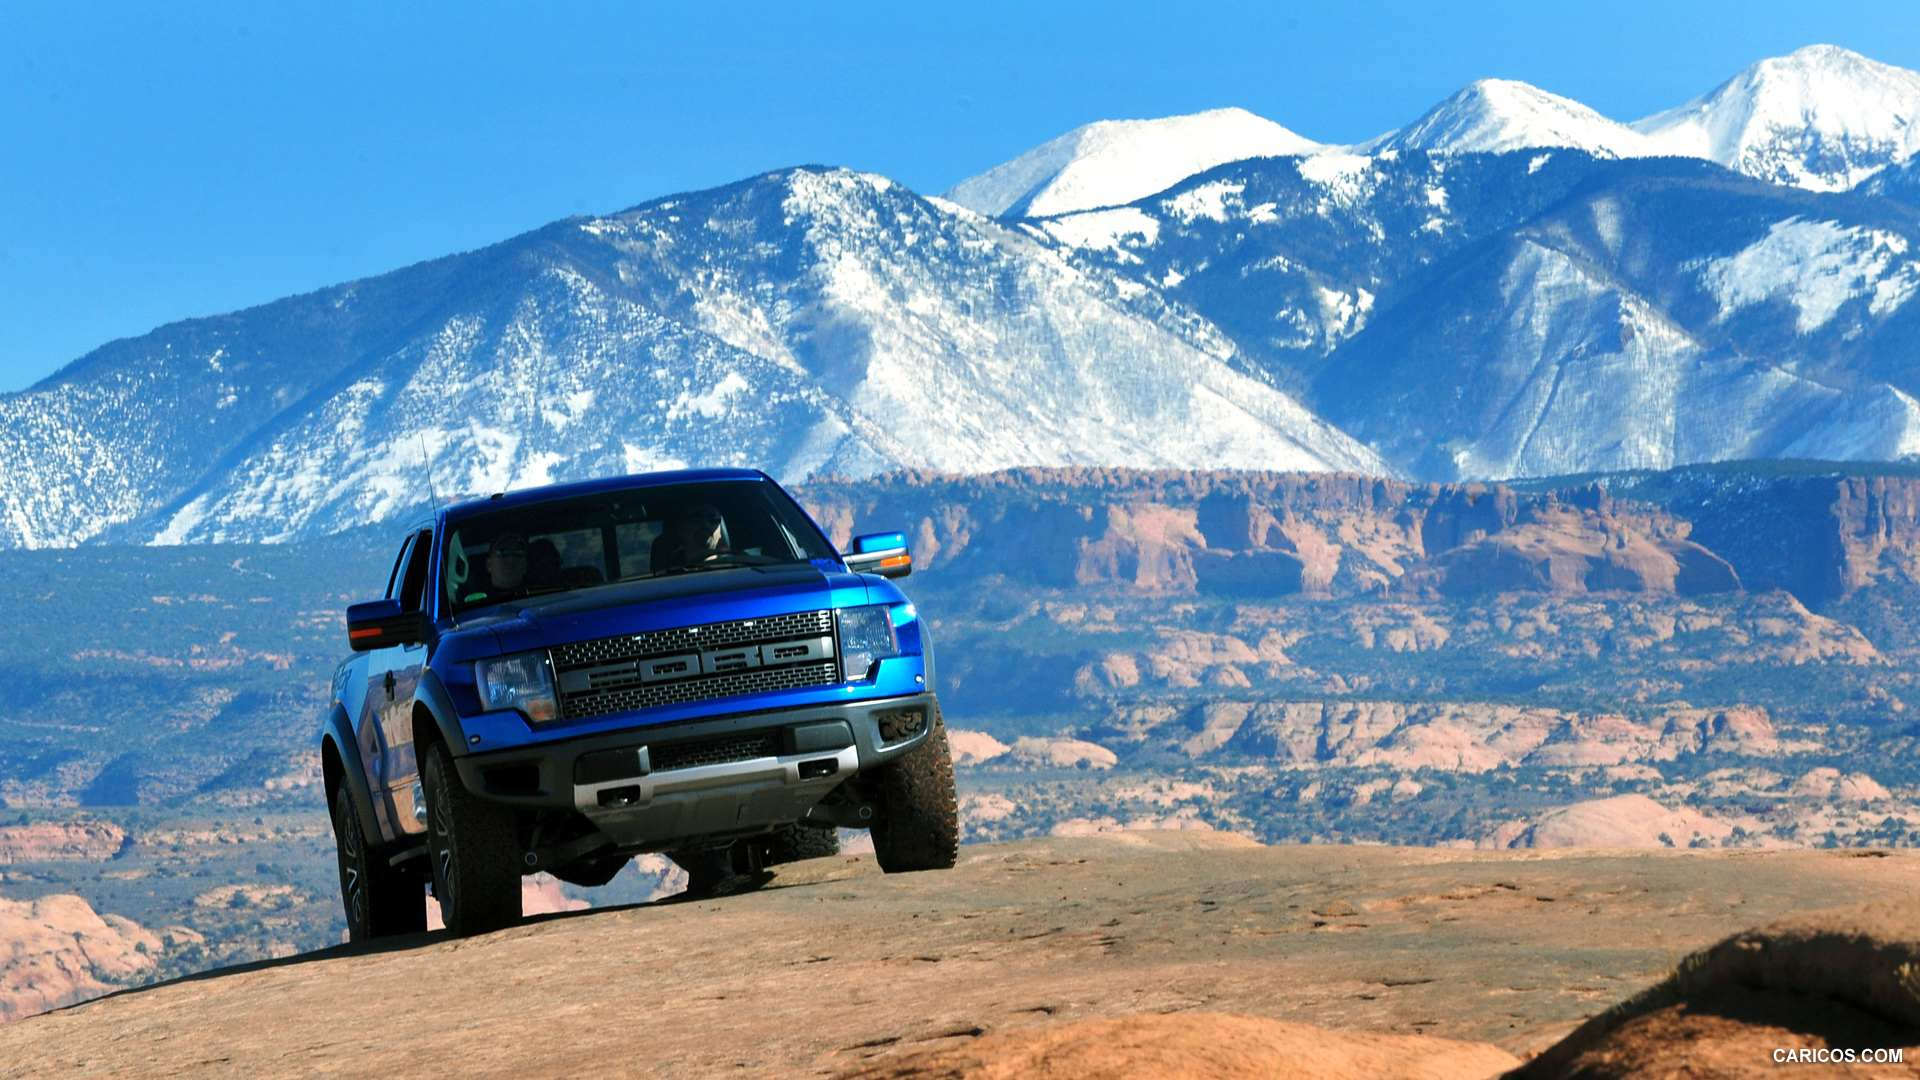 2012 Ford Raptor Wallpaper 21878 Wallpaper High Resolution 1920x1080